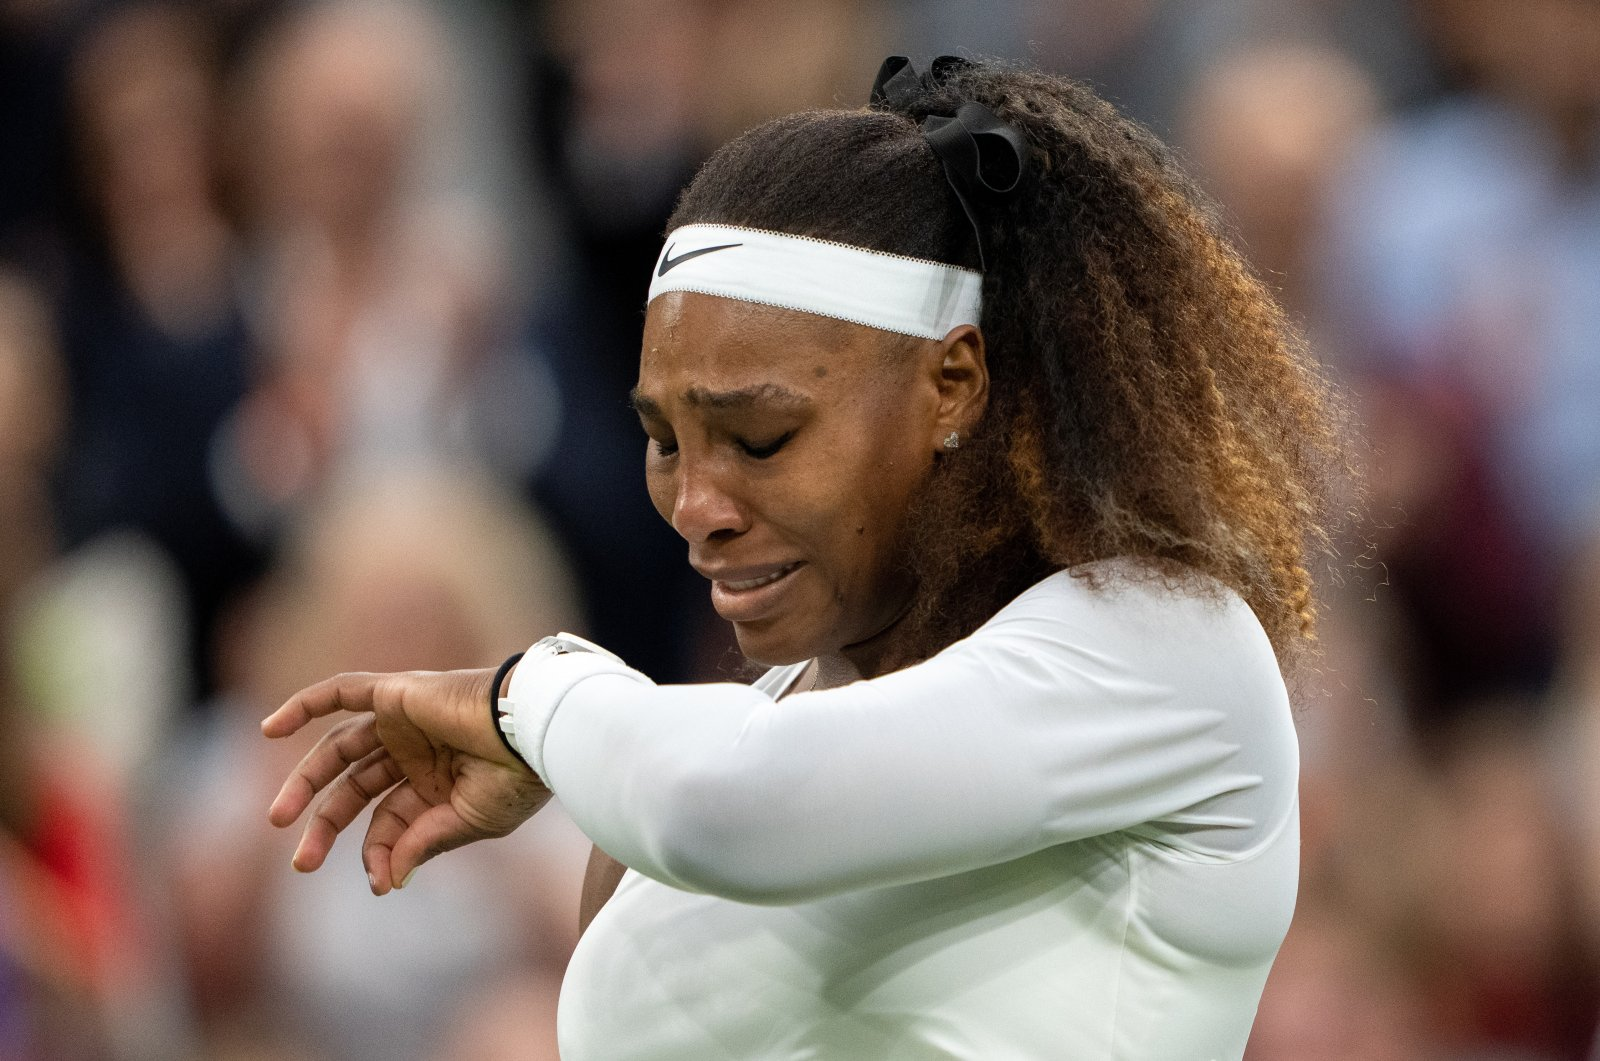 U.S.' Serena Williams in tears after sustaining an injury before retiring from her Wimbledon first-round match against Belarus' Aliaksandra Sasnovich All England Tennis Club, London, England, June 29, 2021. (Reuters Photo)